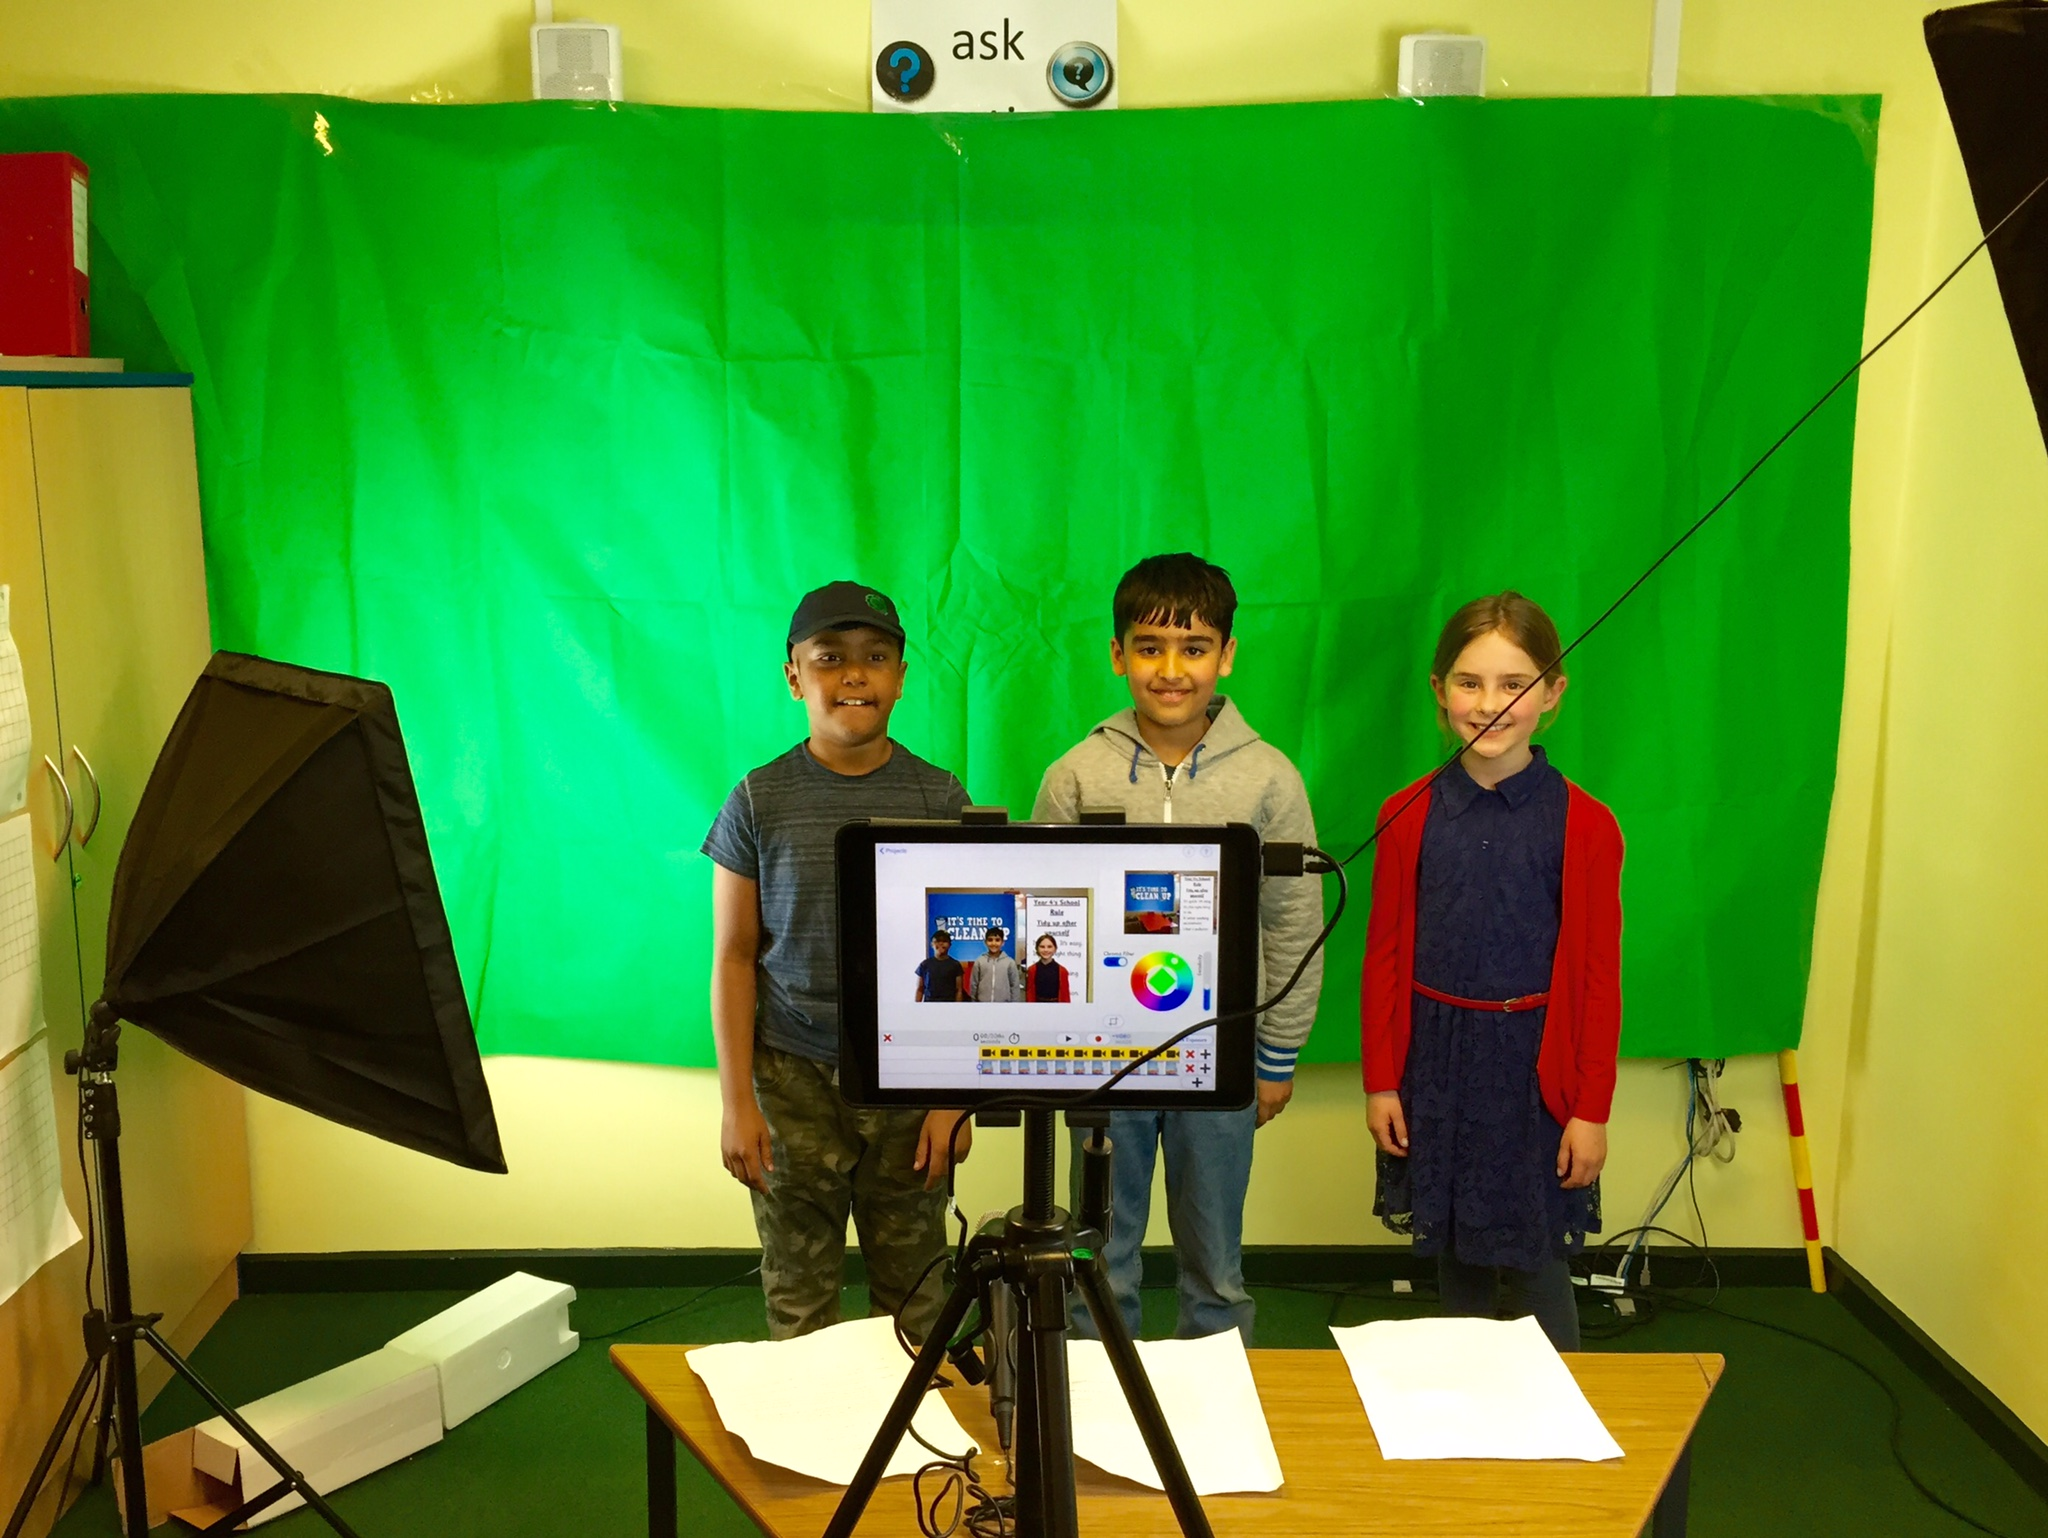 Filming in front of the green screen.